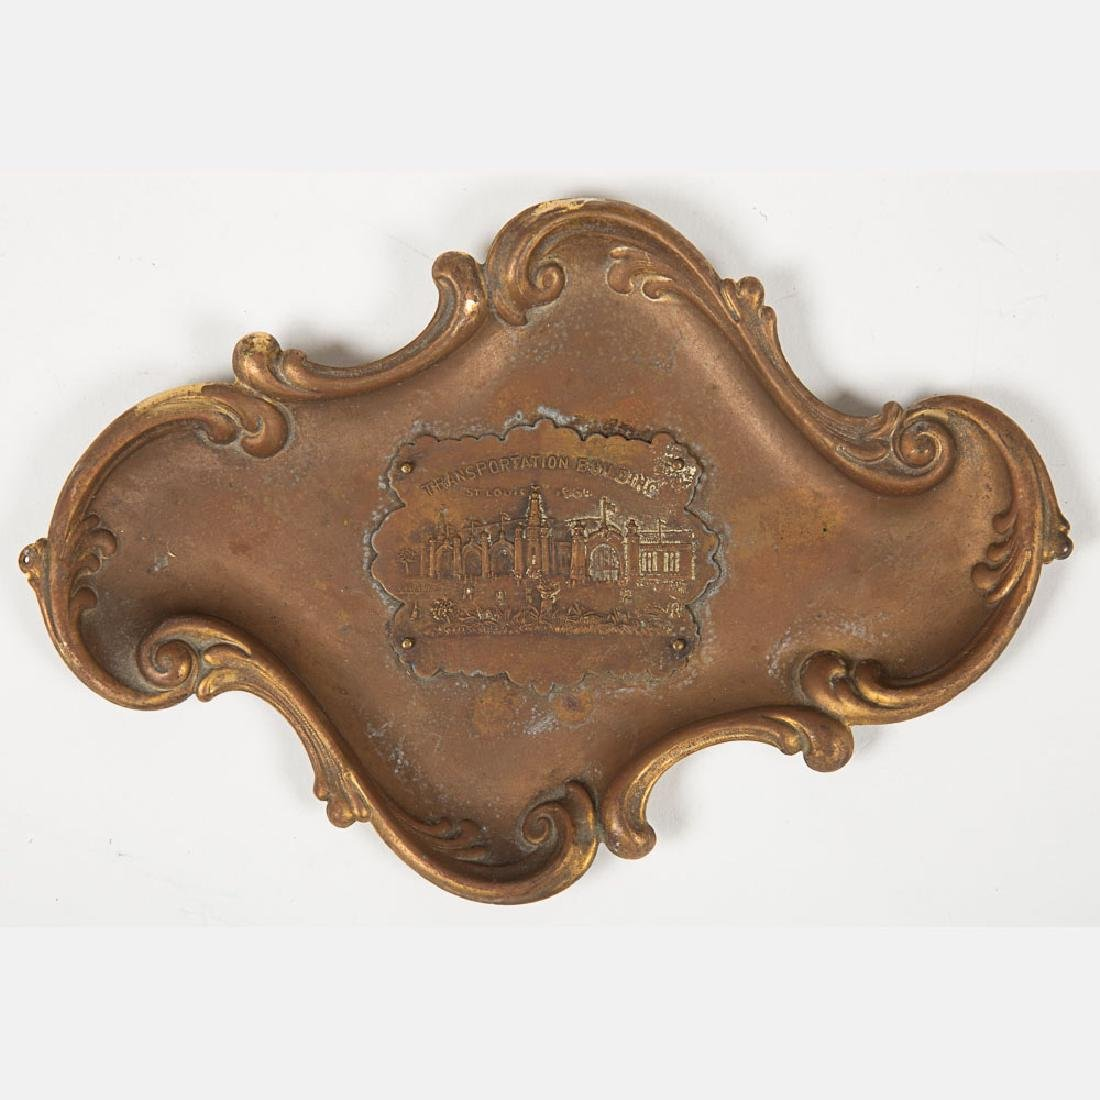 A Group of Six Metal Souvenir Trays from the Louisiana - 9